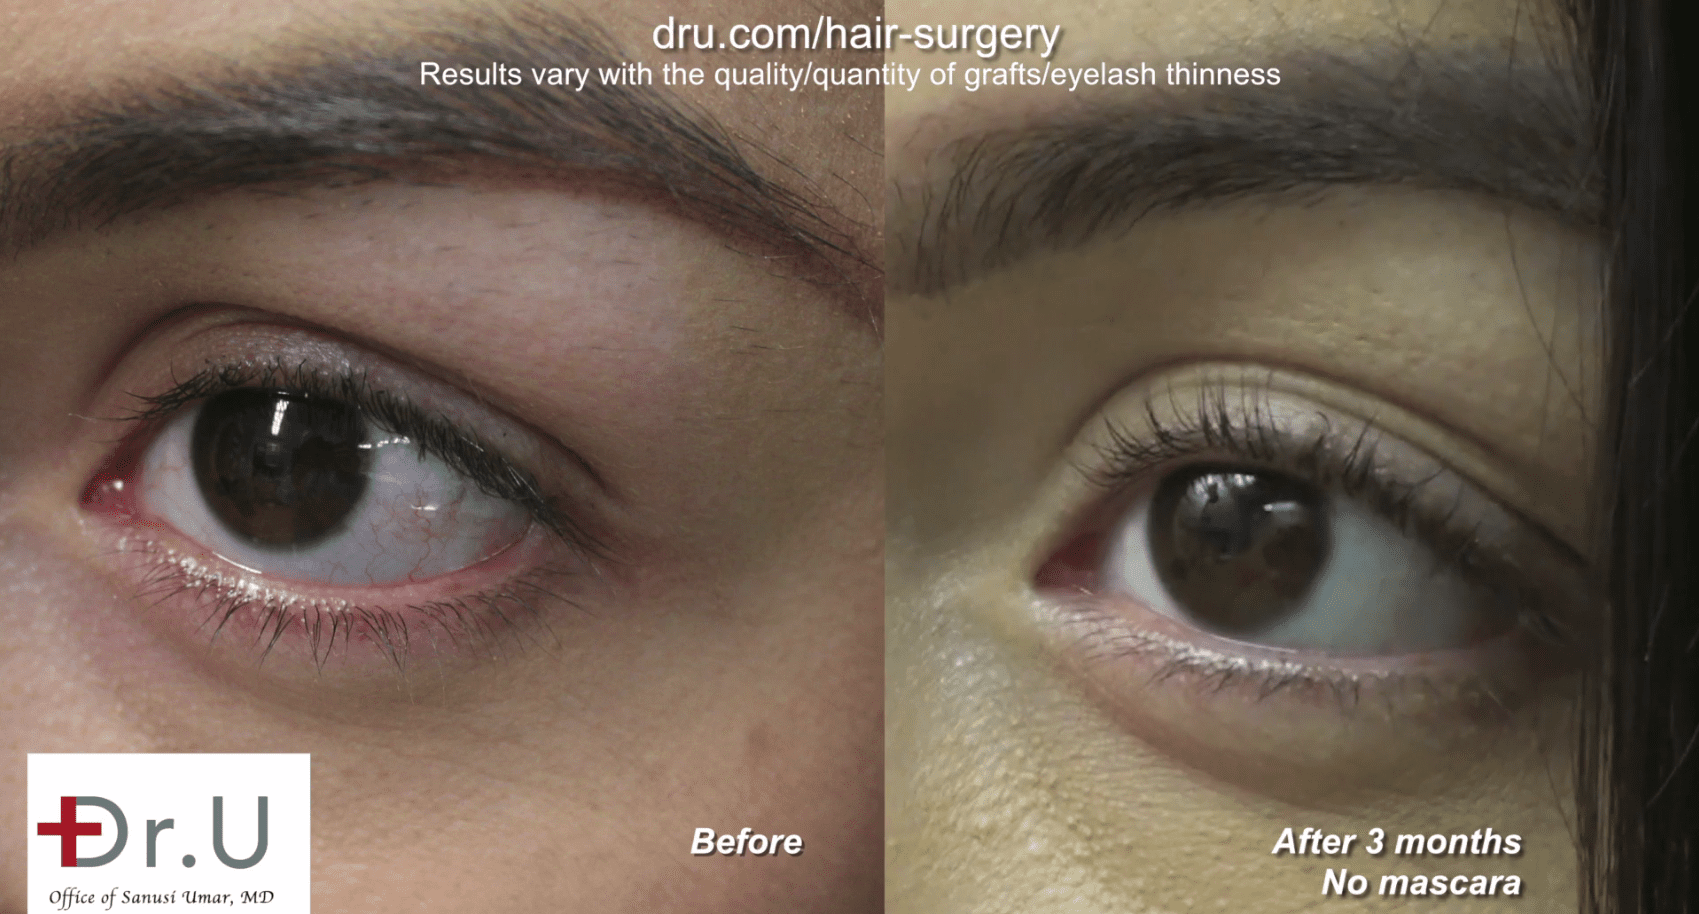 3 months post-operation, the patient noticed fuller and longer eyelashes.